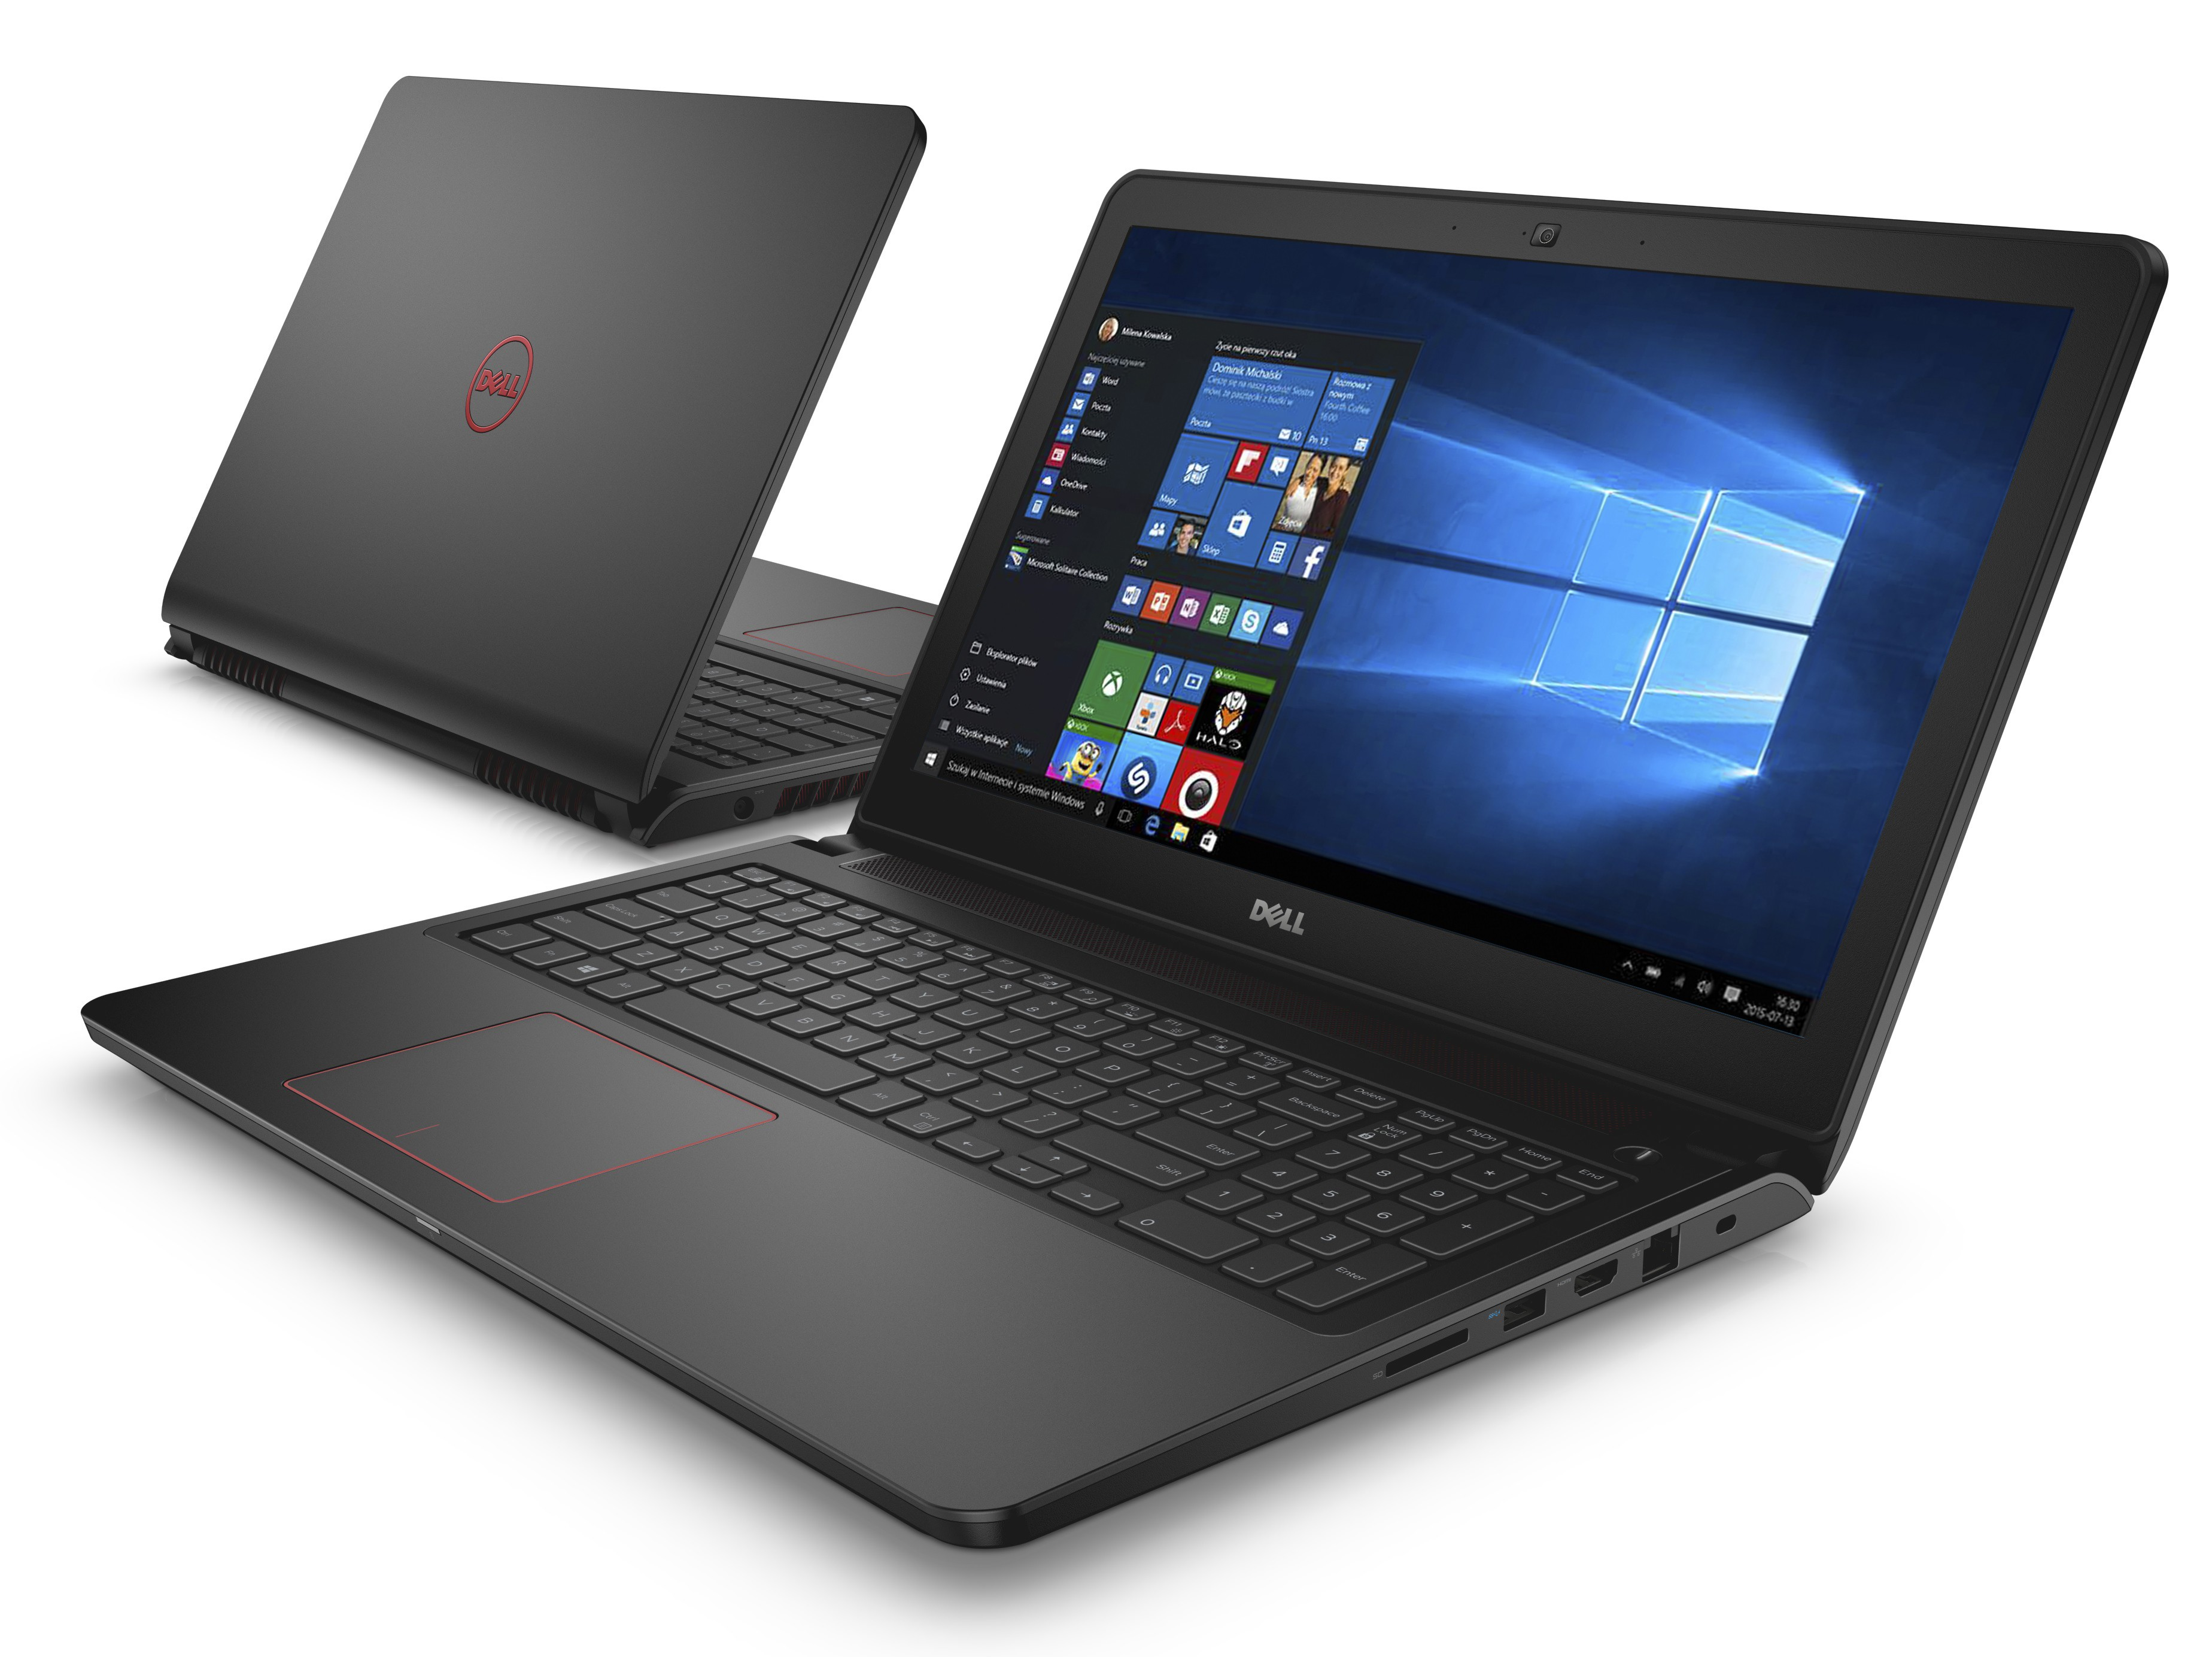 "Dell Inspiron 7559 Intel Core i5-6300HQ, 4GB RAM, 1TB HDD, 15.6""FHD, 4GB GeForce GTX 960M, Win10 Home OS Recovery USB,Black, 1Yr (F7559 - 70071890 )"